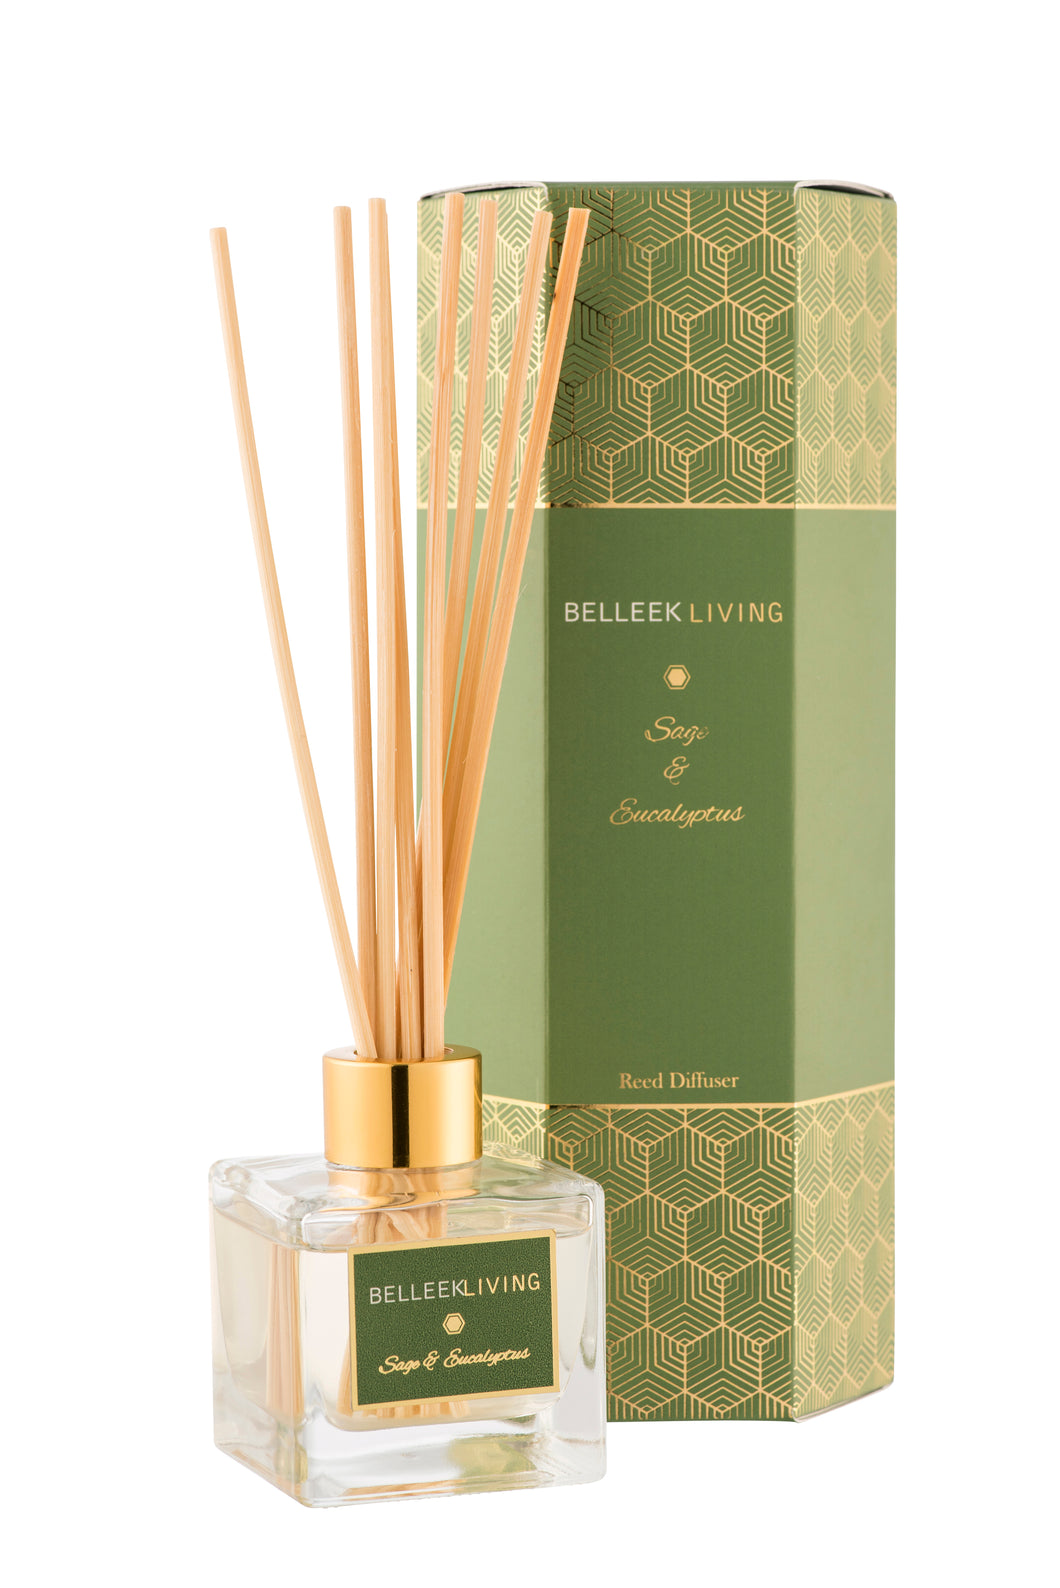 Belleek - Home Fragrance Sage and Eucalyptus Diffuser